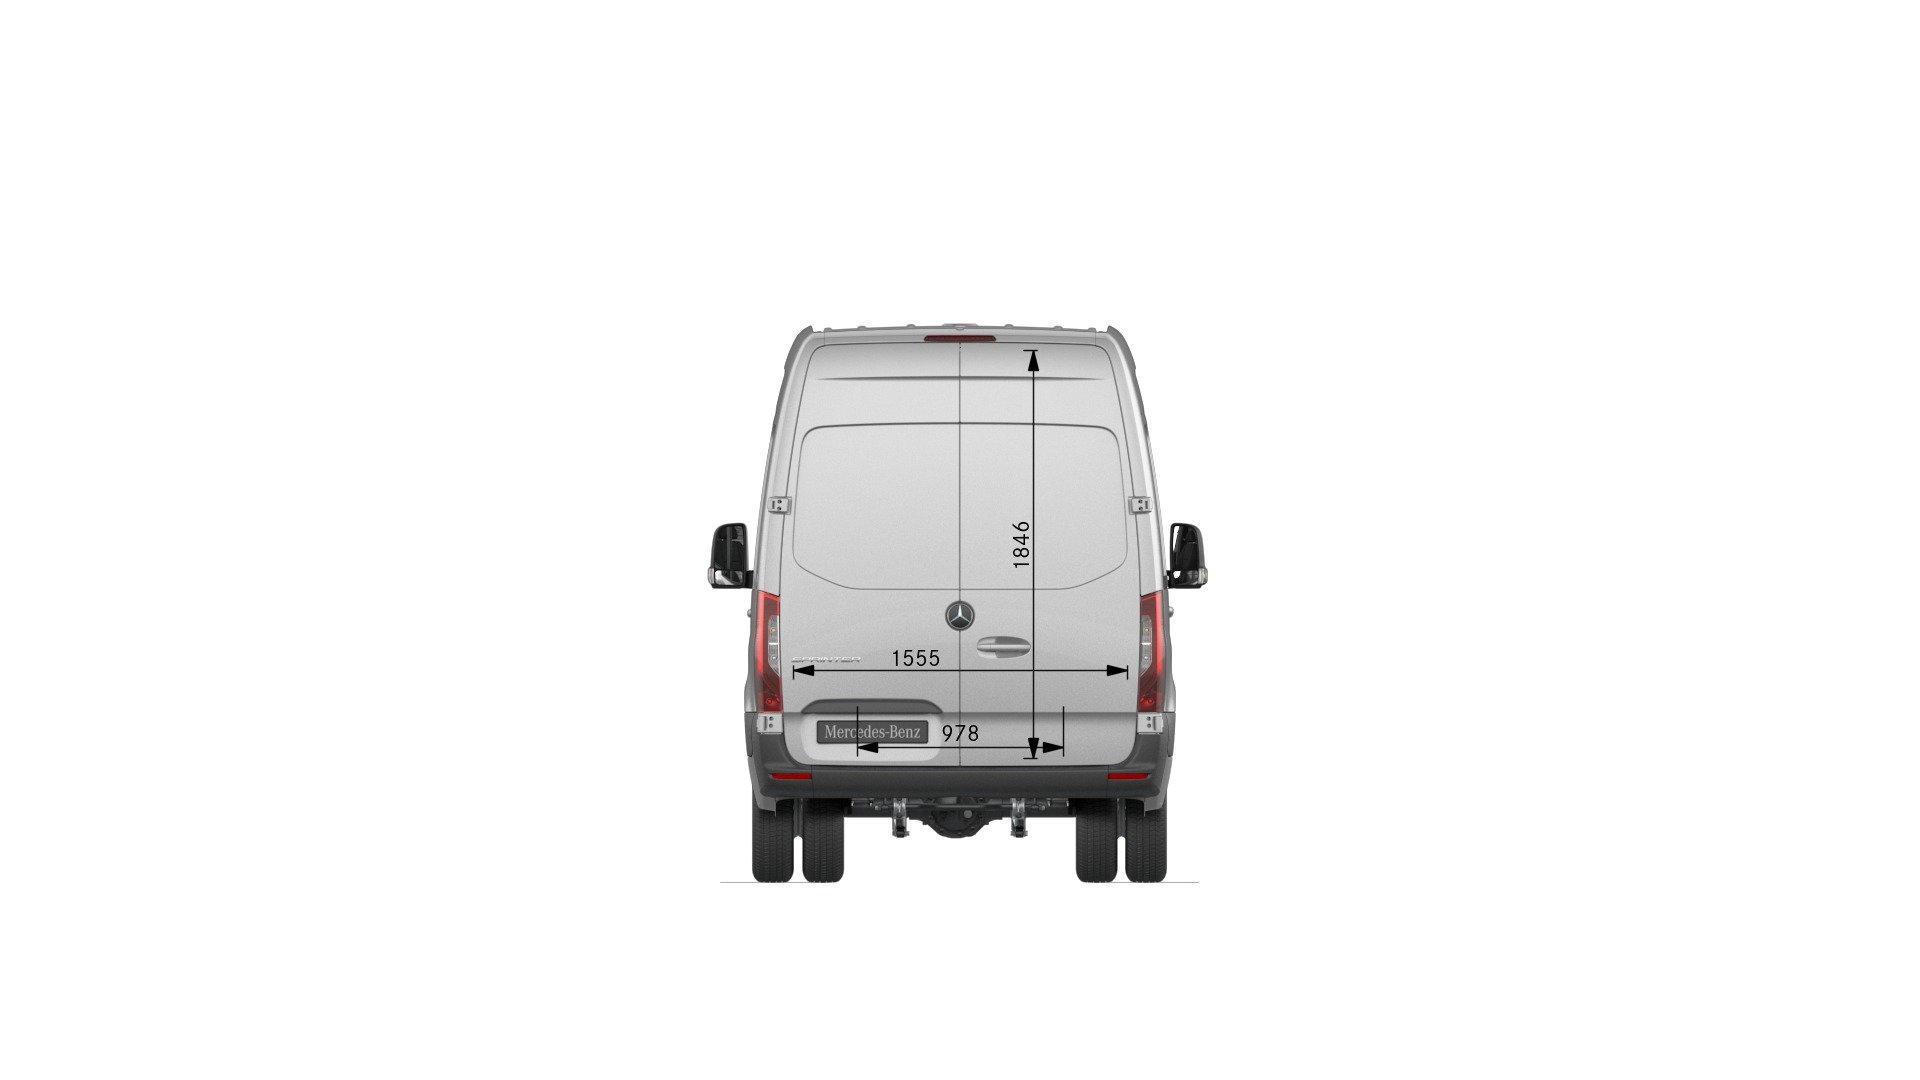 Van drawings-Rear view-long